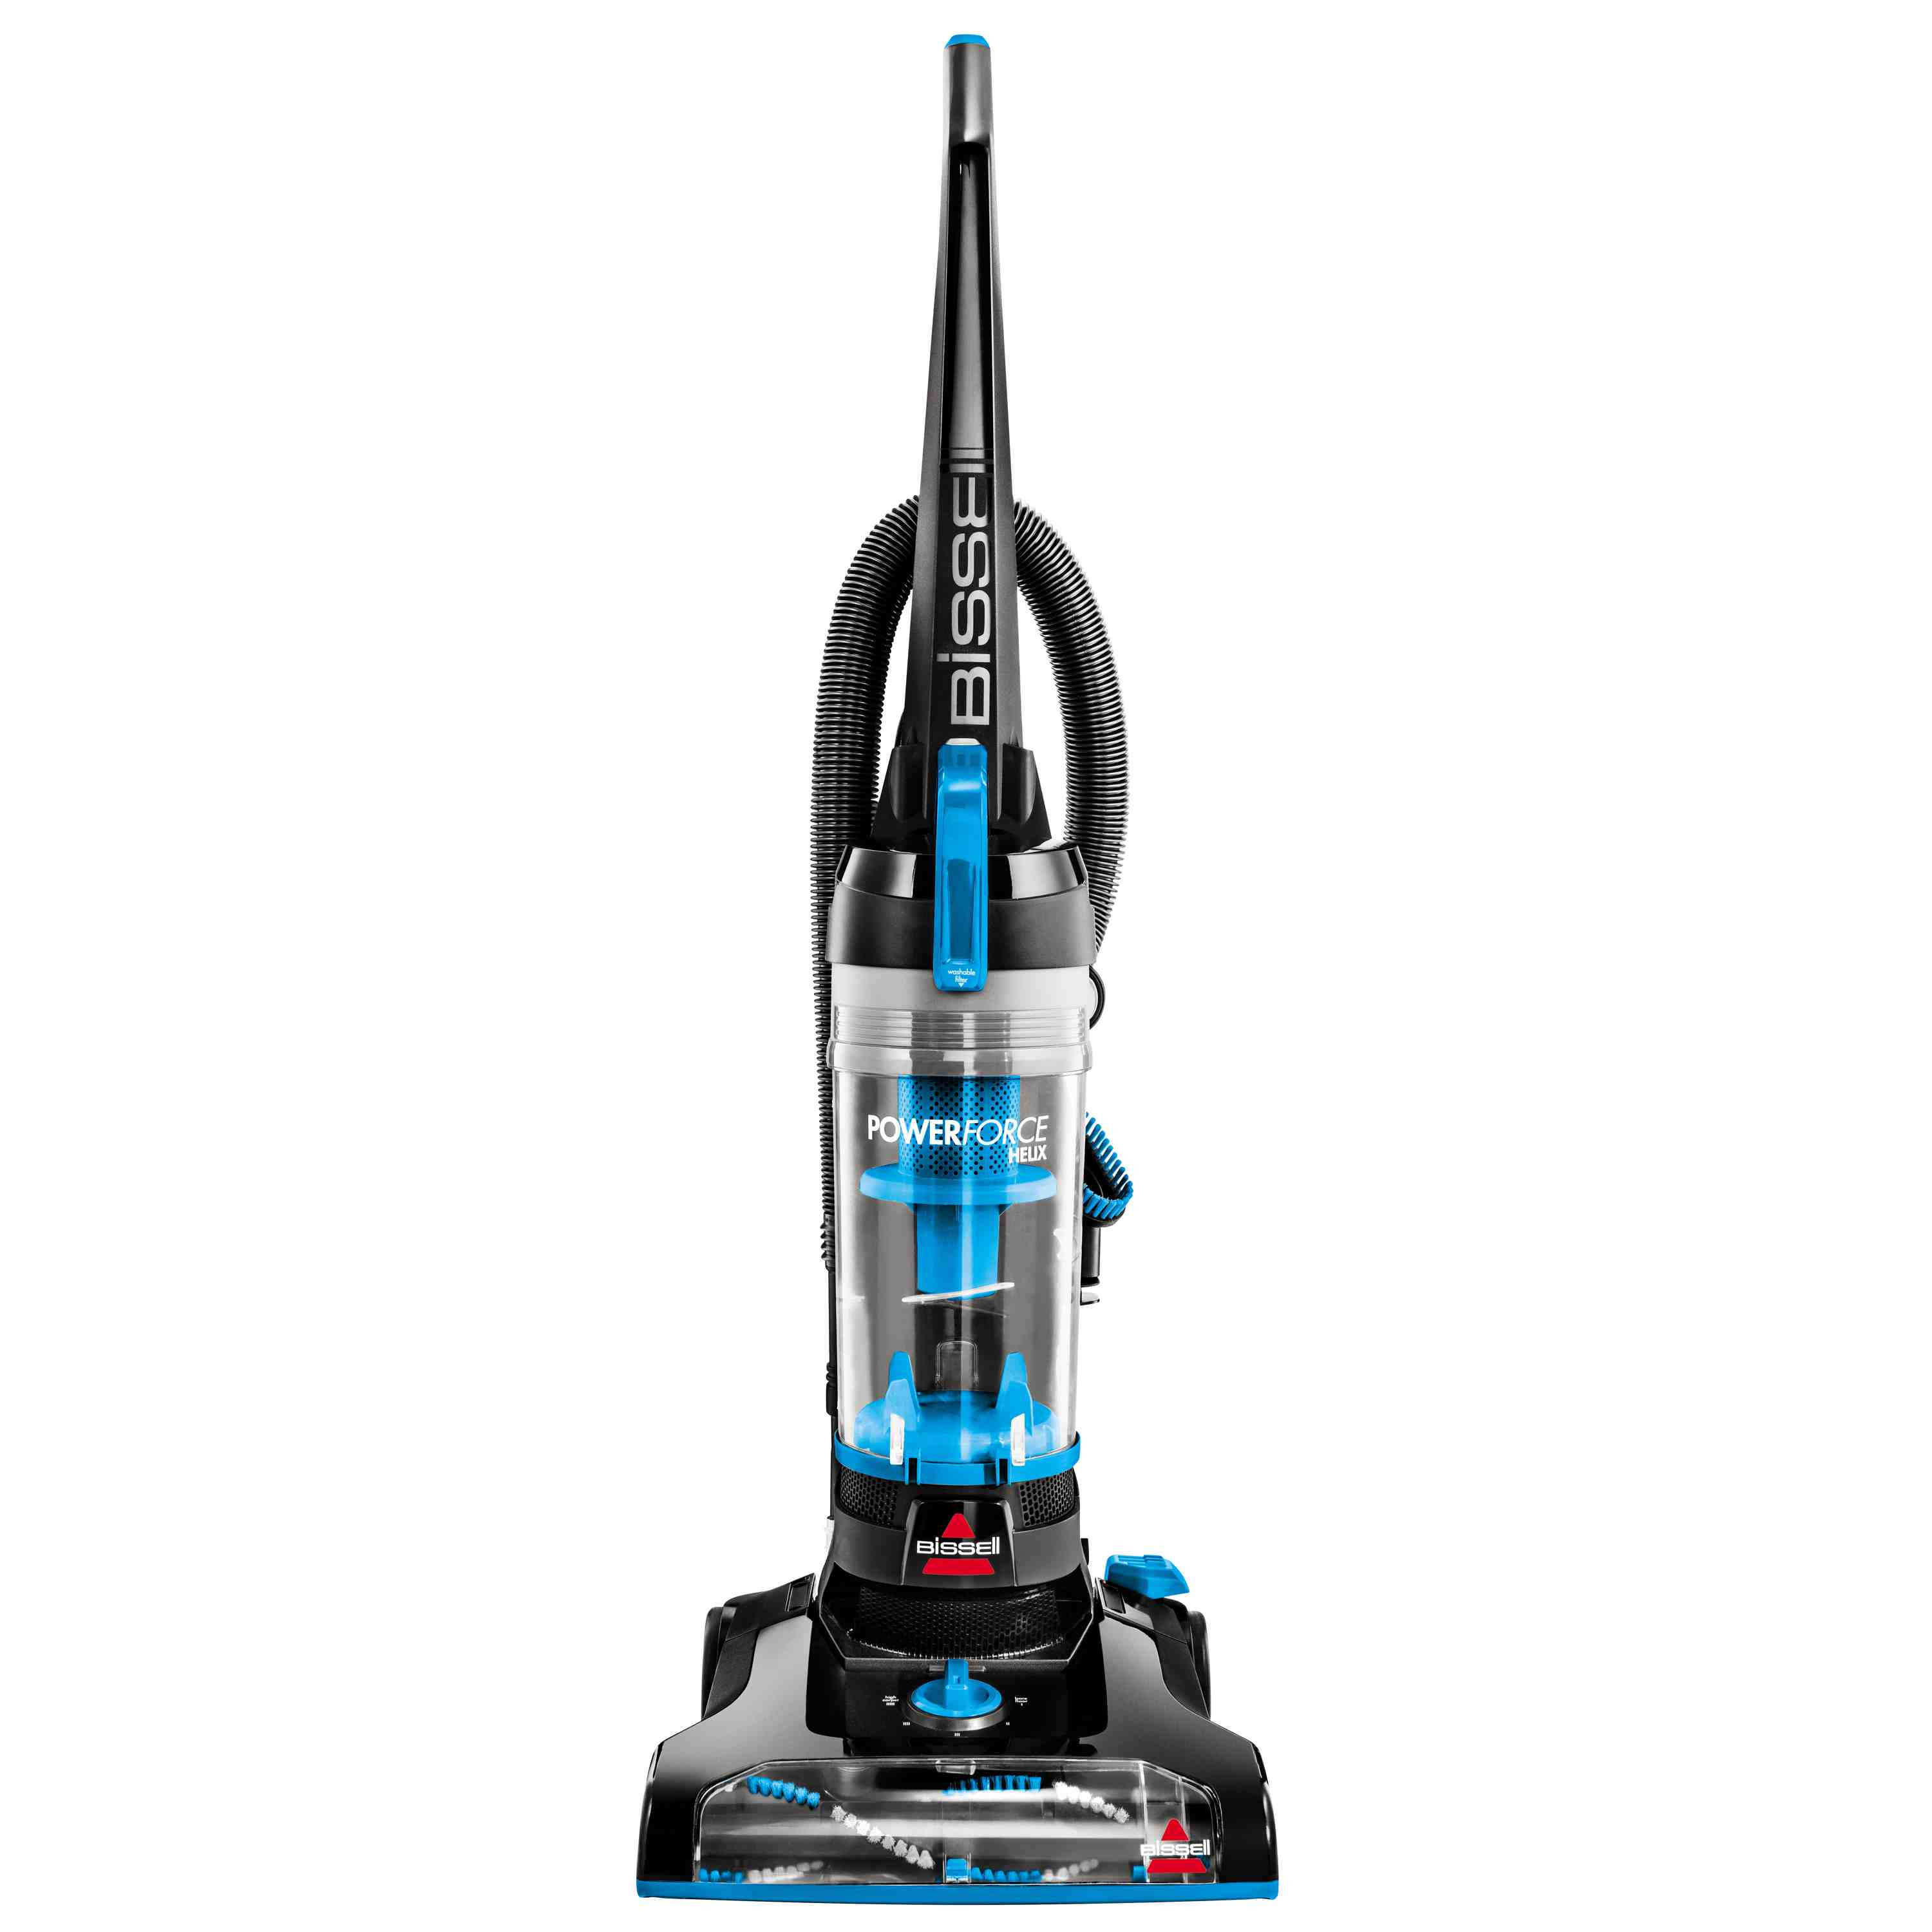 vacuum cleaner for pet hair on hardwood floors of the 10 best vacuum cleaners to buy in 2018 with best budget bissell powerforce helix bagless upright vacuum